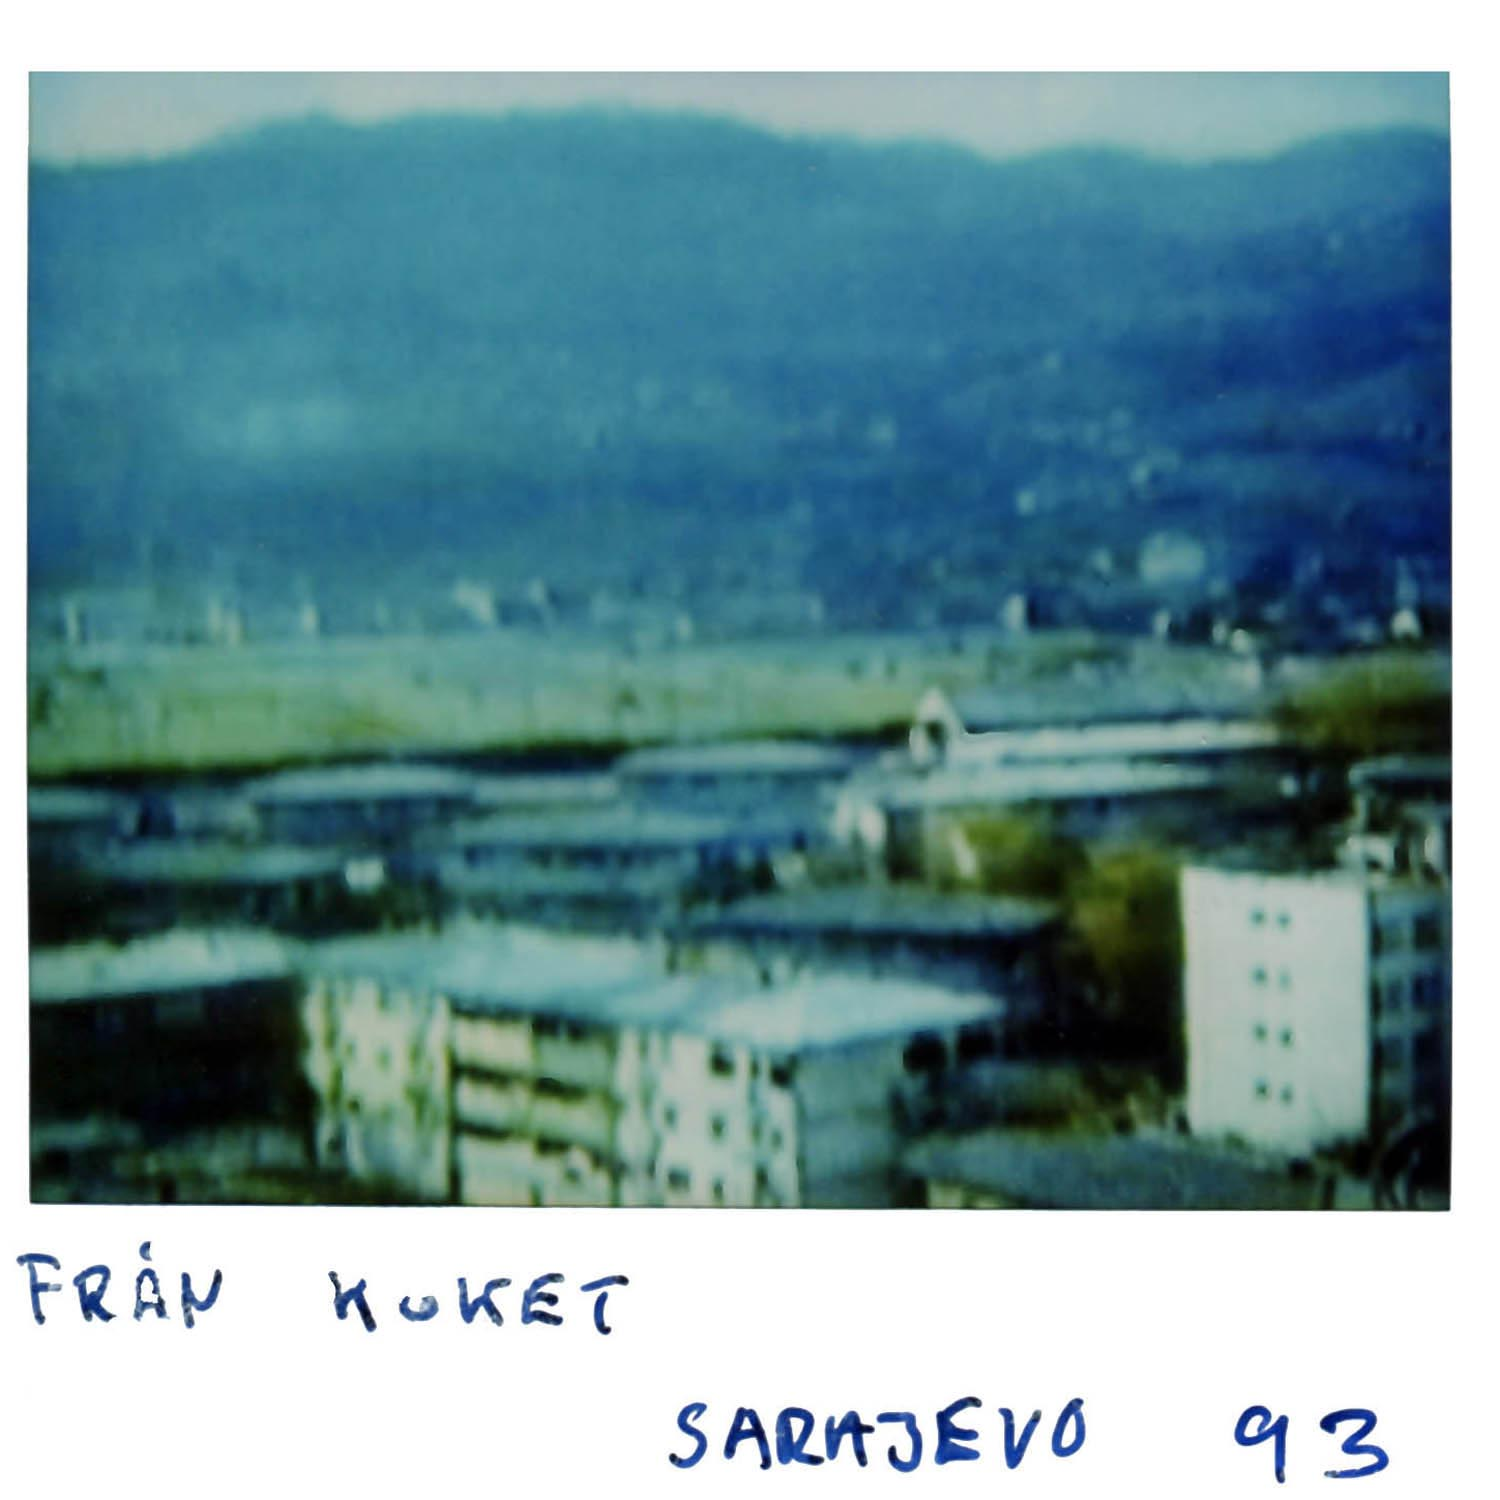 Pic taken from our  kitchen in Sarajevo 93